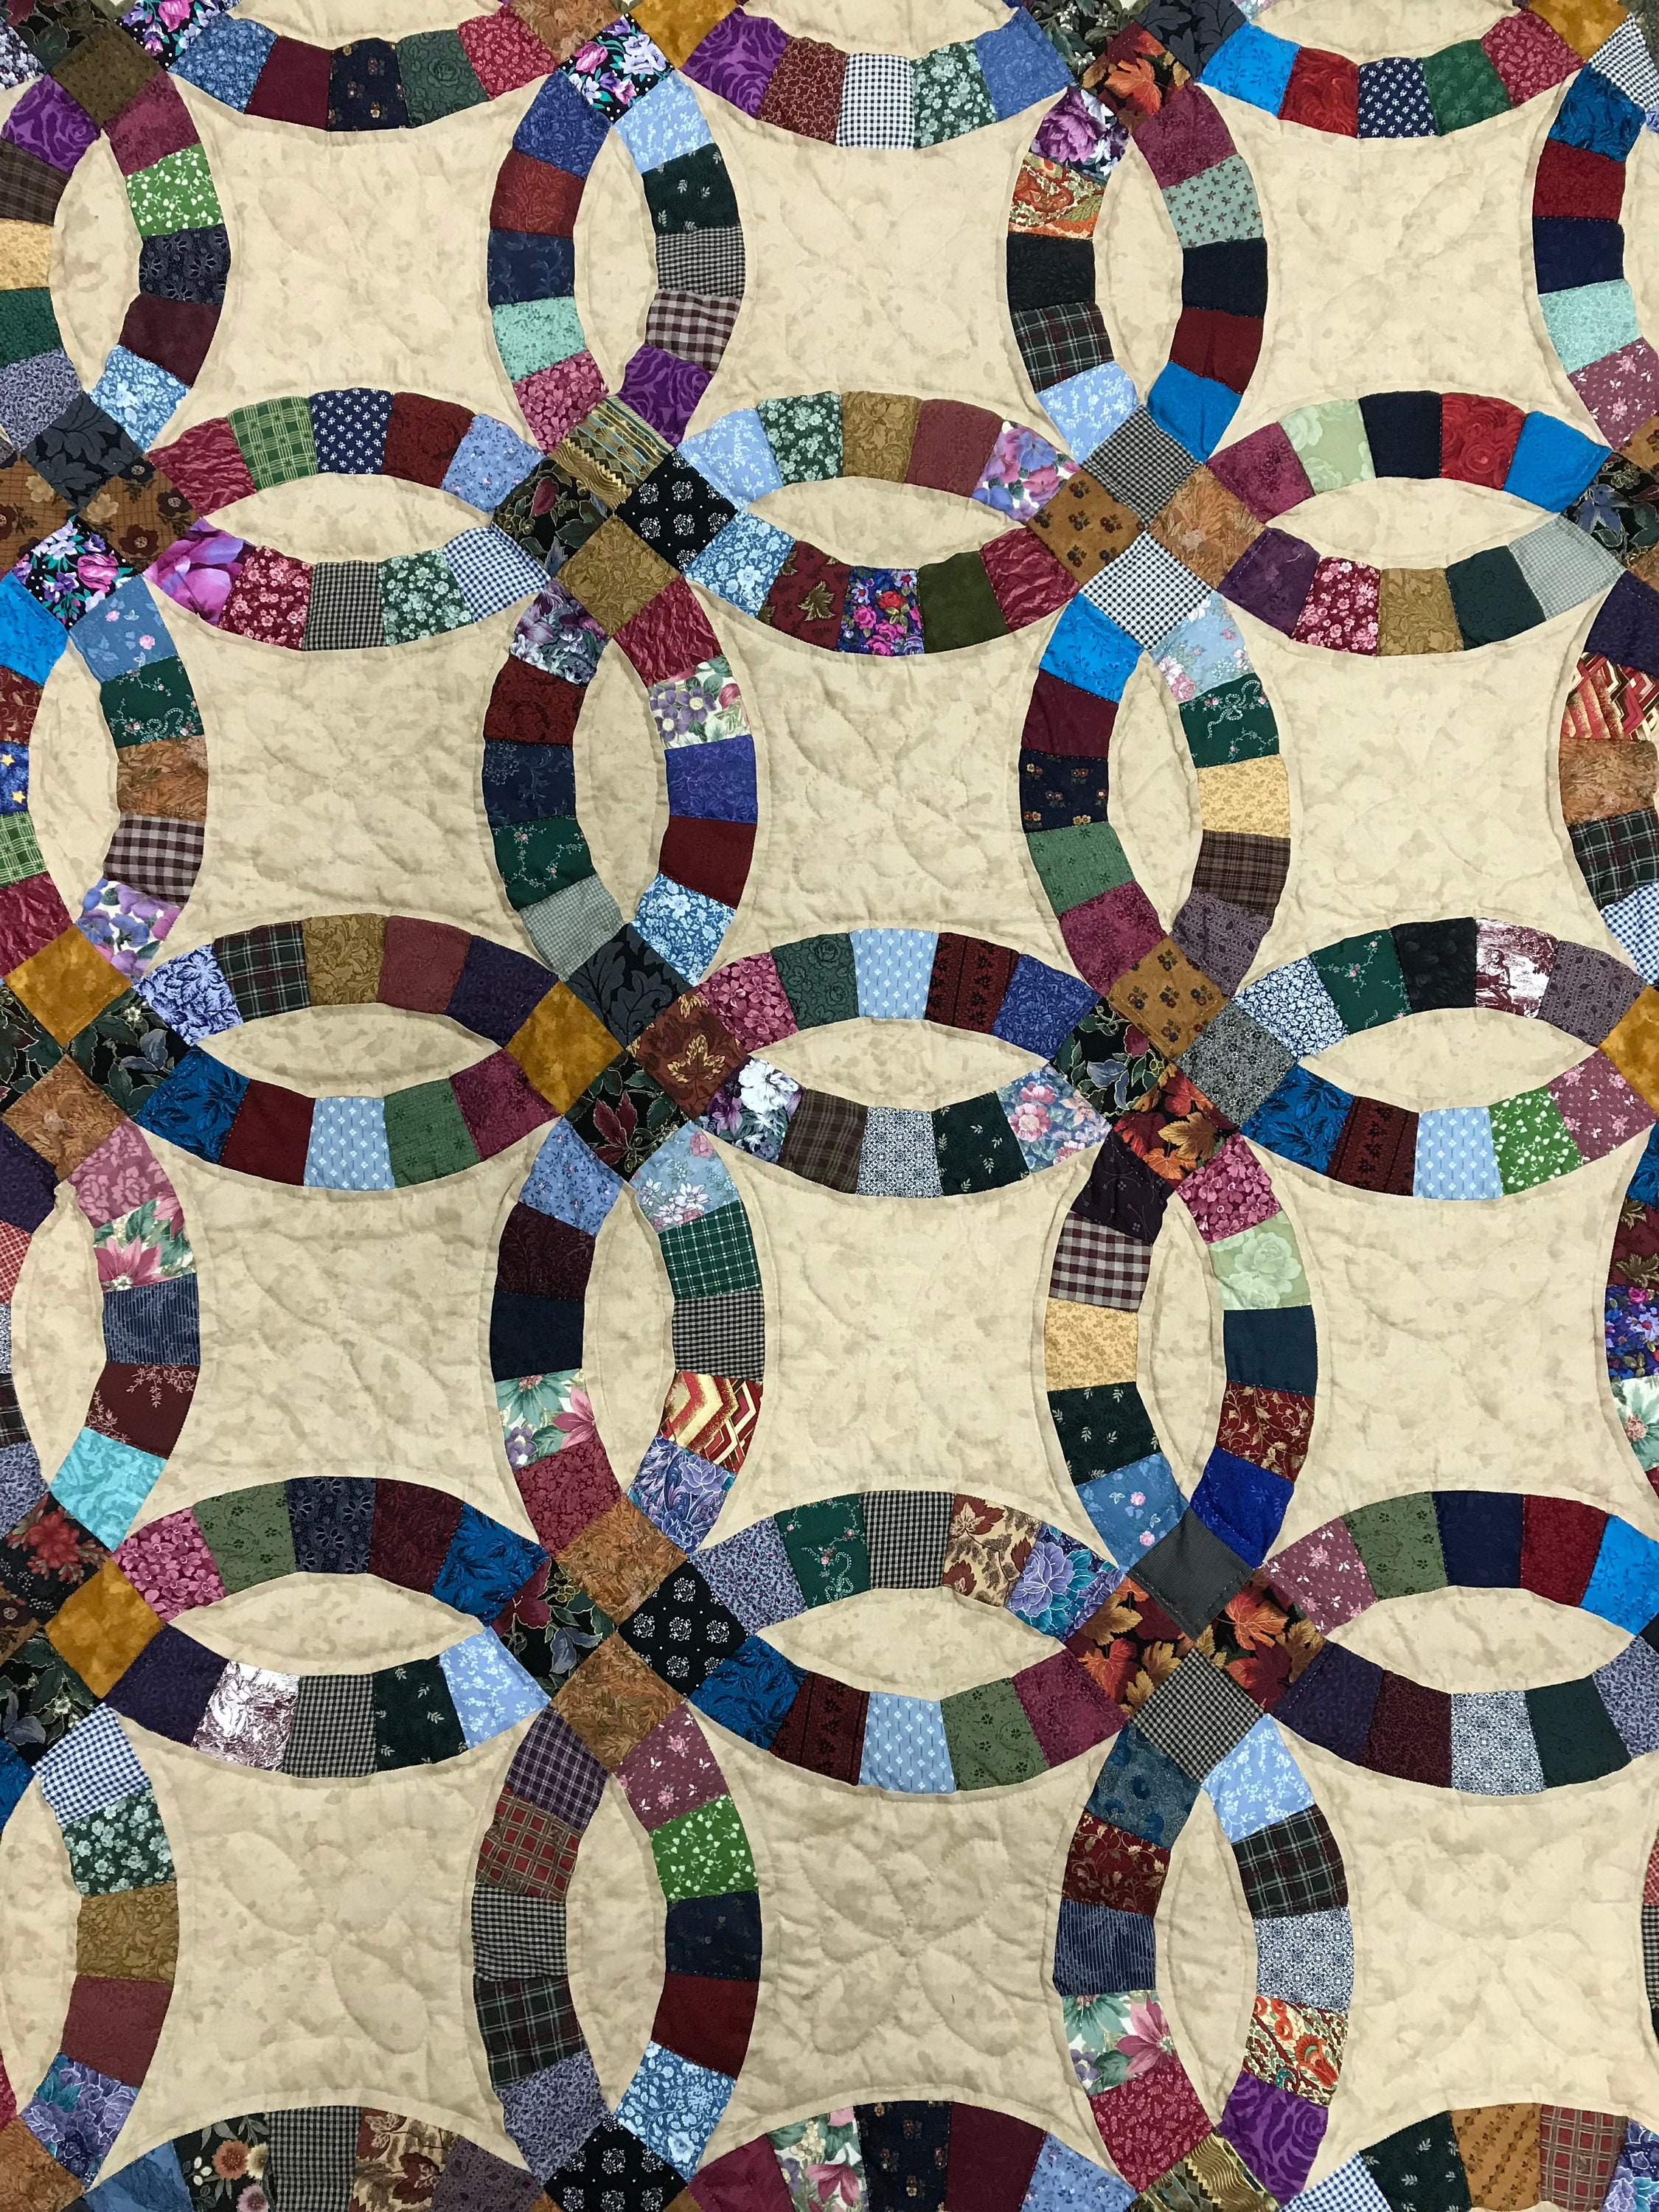 King Double Wedding Ring Quilt, Hand Quilted by the Amish